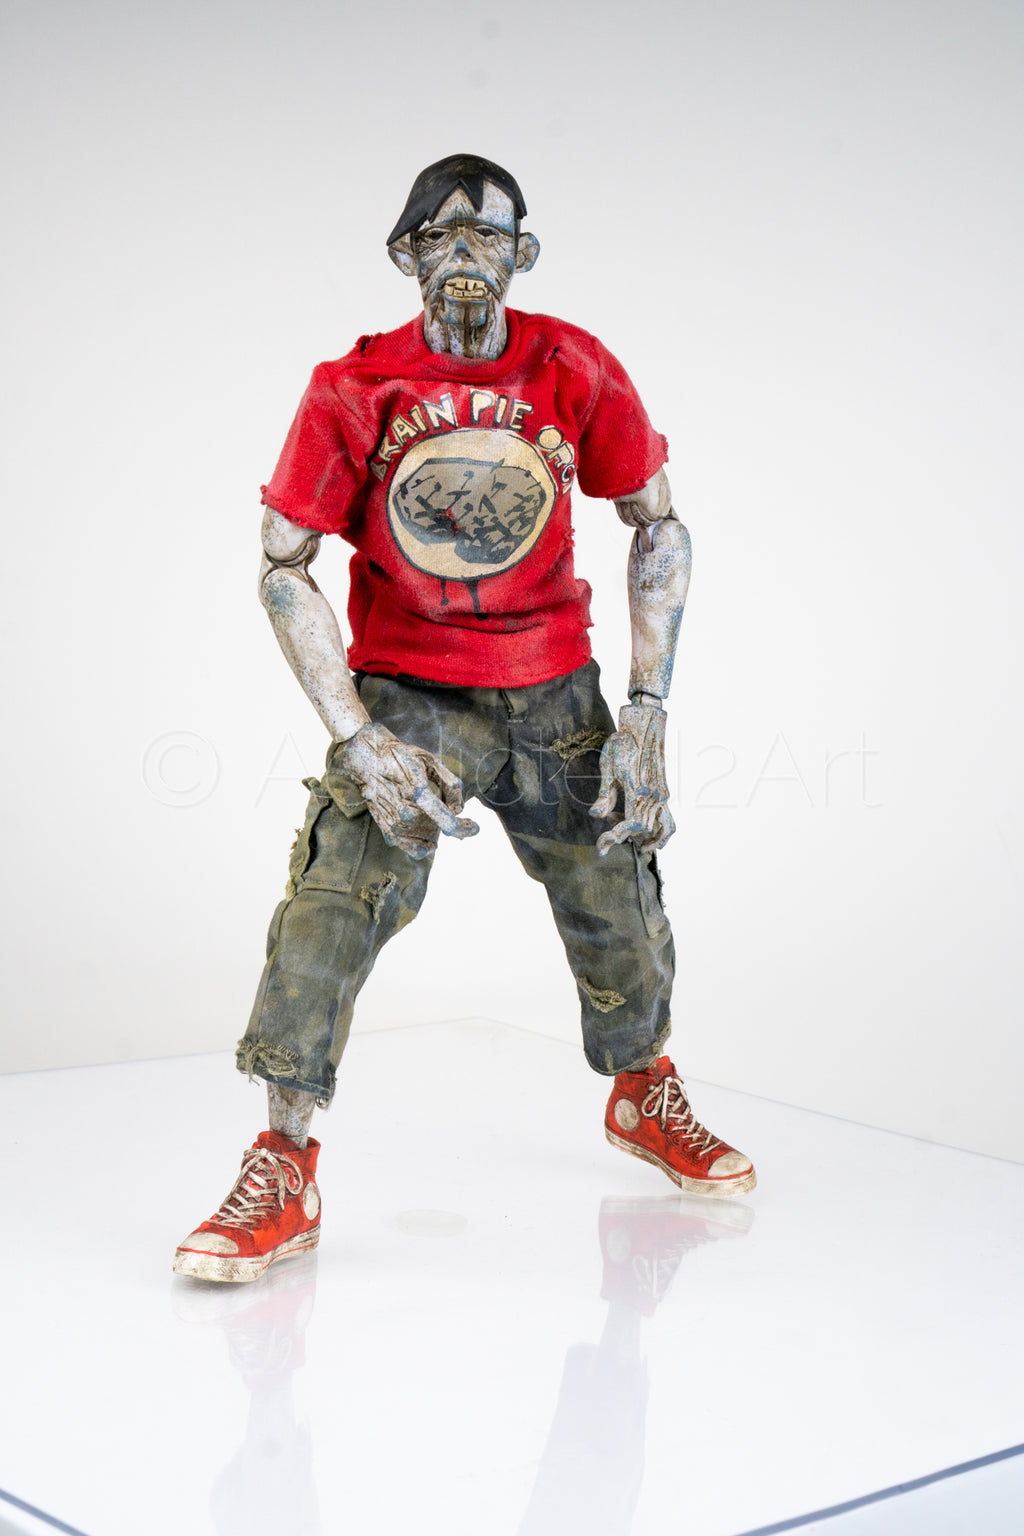 """ZvR (Zombies vs Robots) SDCC '12 Exclusive Zomb (Red Shirt - Brain Pie Orgy)"" by ThreeA (3A) x IDW"